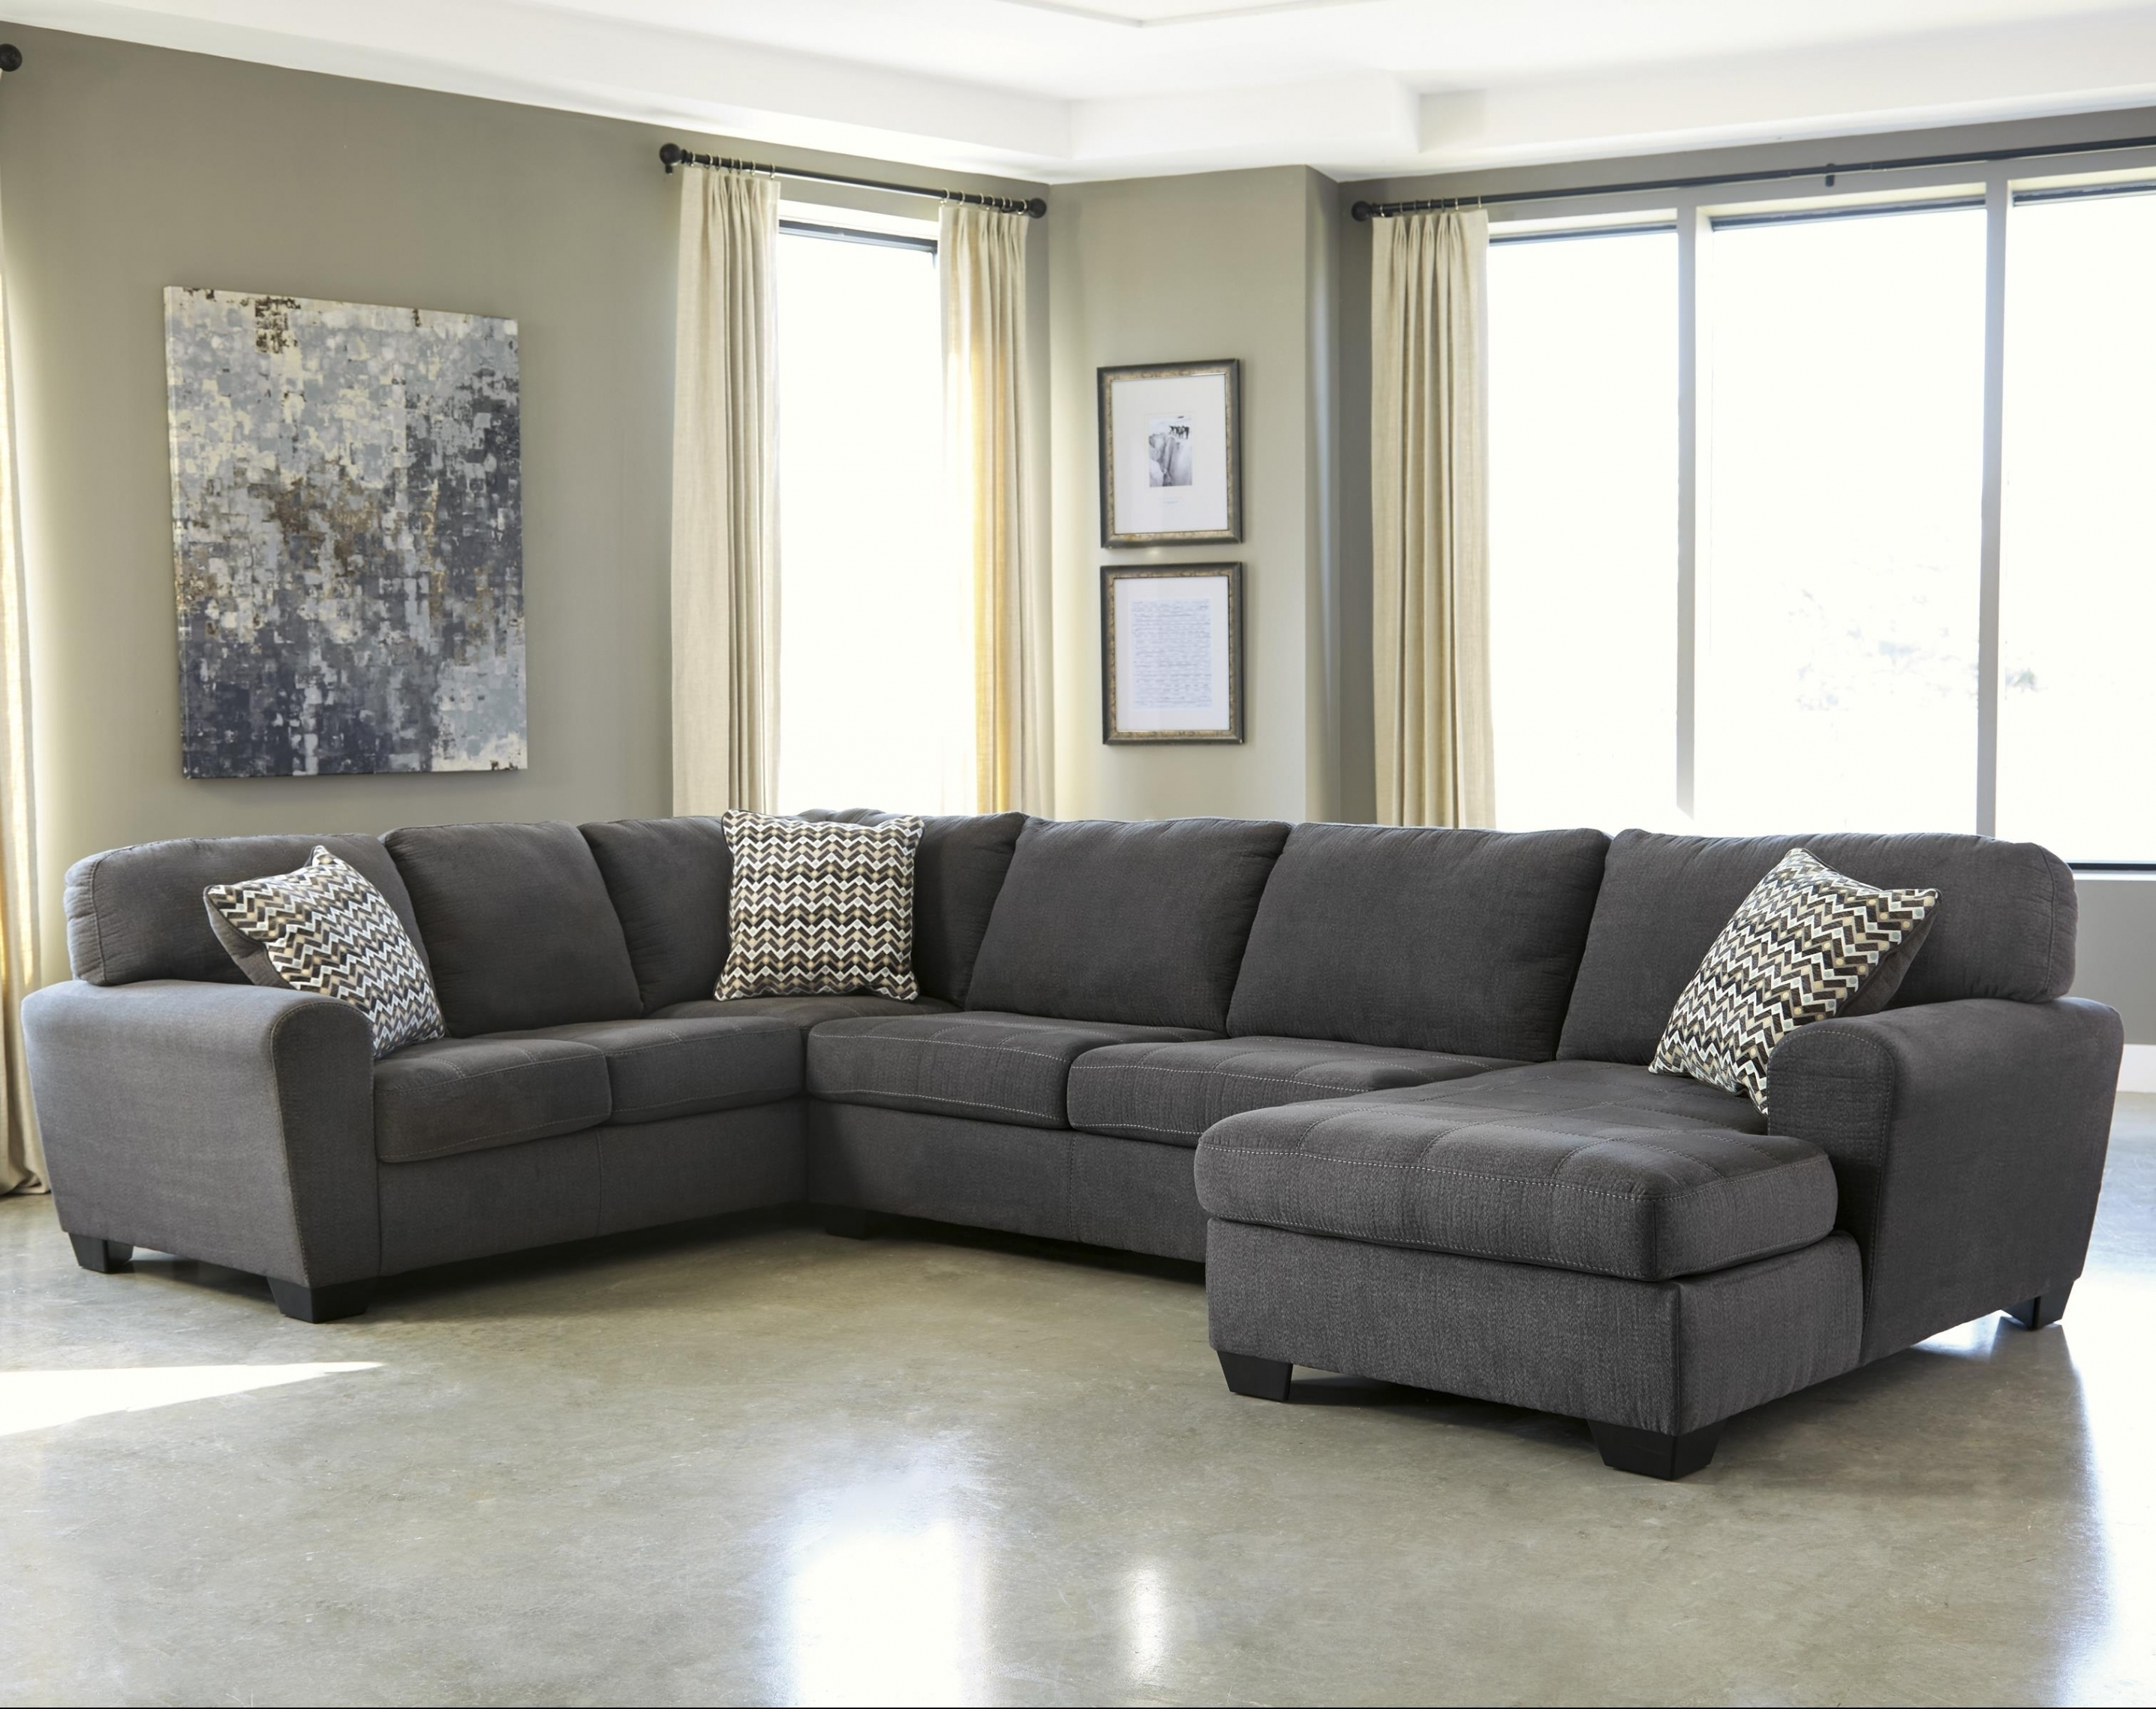 Clubanfi Regarding Luxury Sectional Sofas (View 4 of 20)